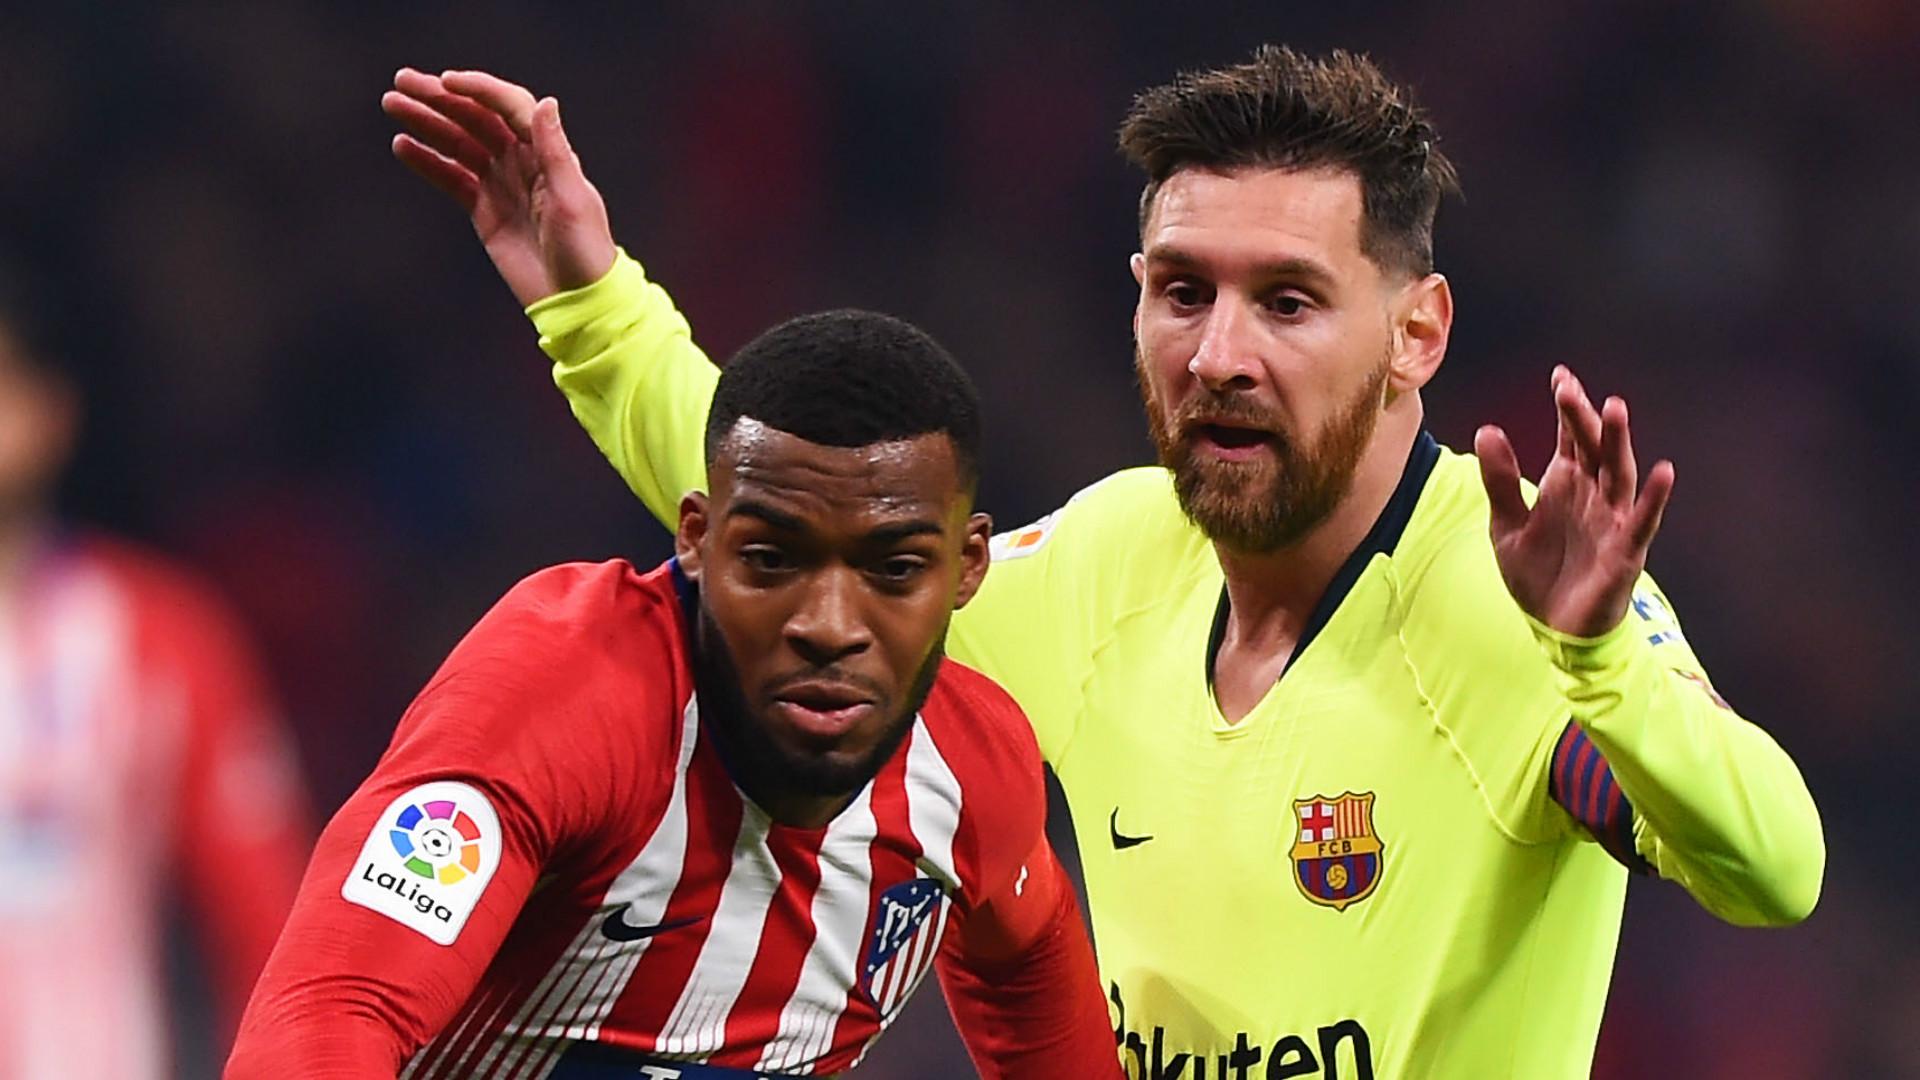 Chelsea 'given opportunity to pursue £50m Atletico Madrid's Thomas Lemar'